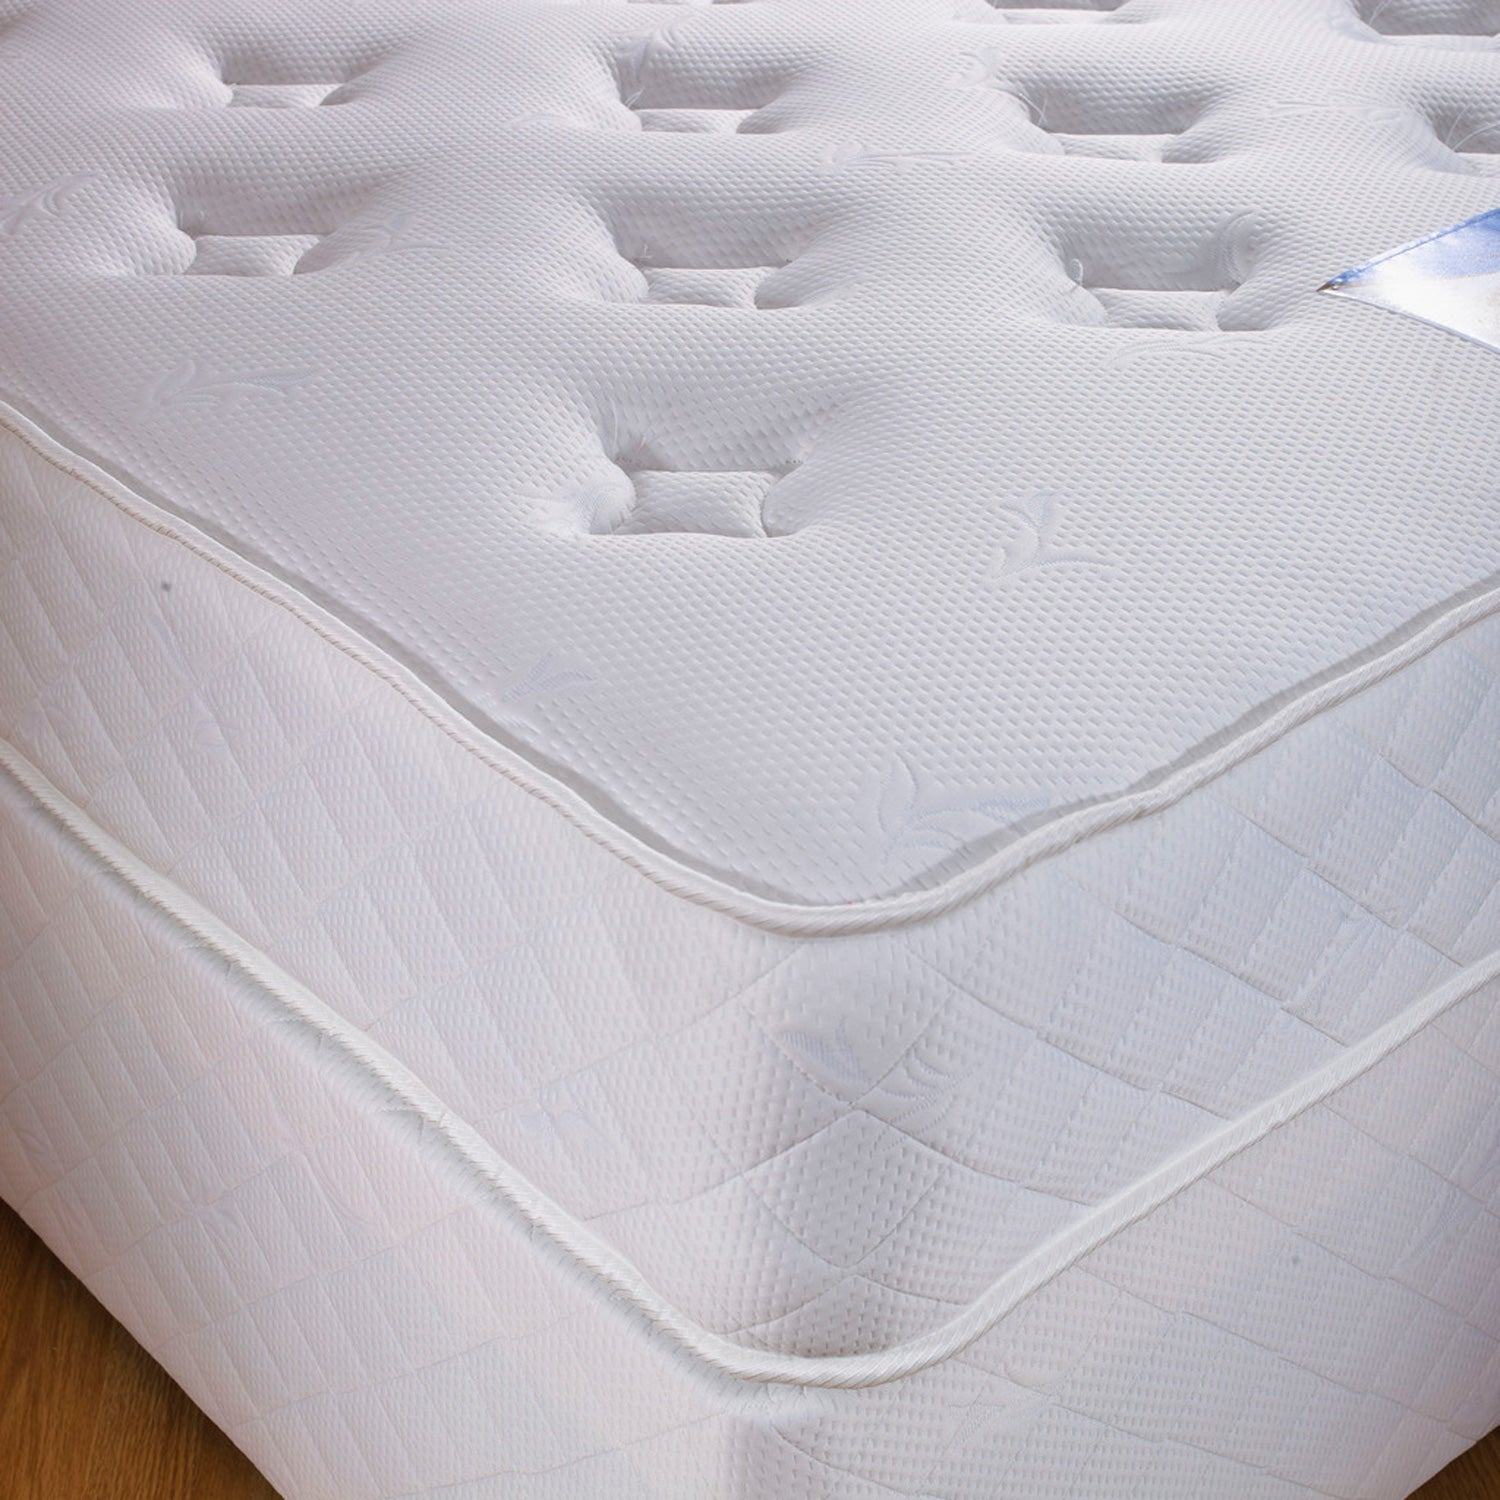 Healthcare Supreme Divan Set (Mattress = Medium-Firm)